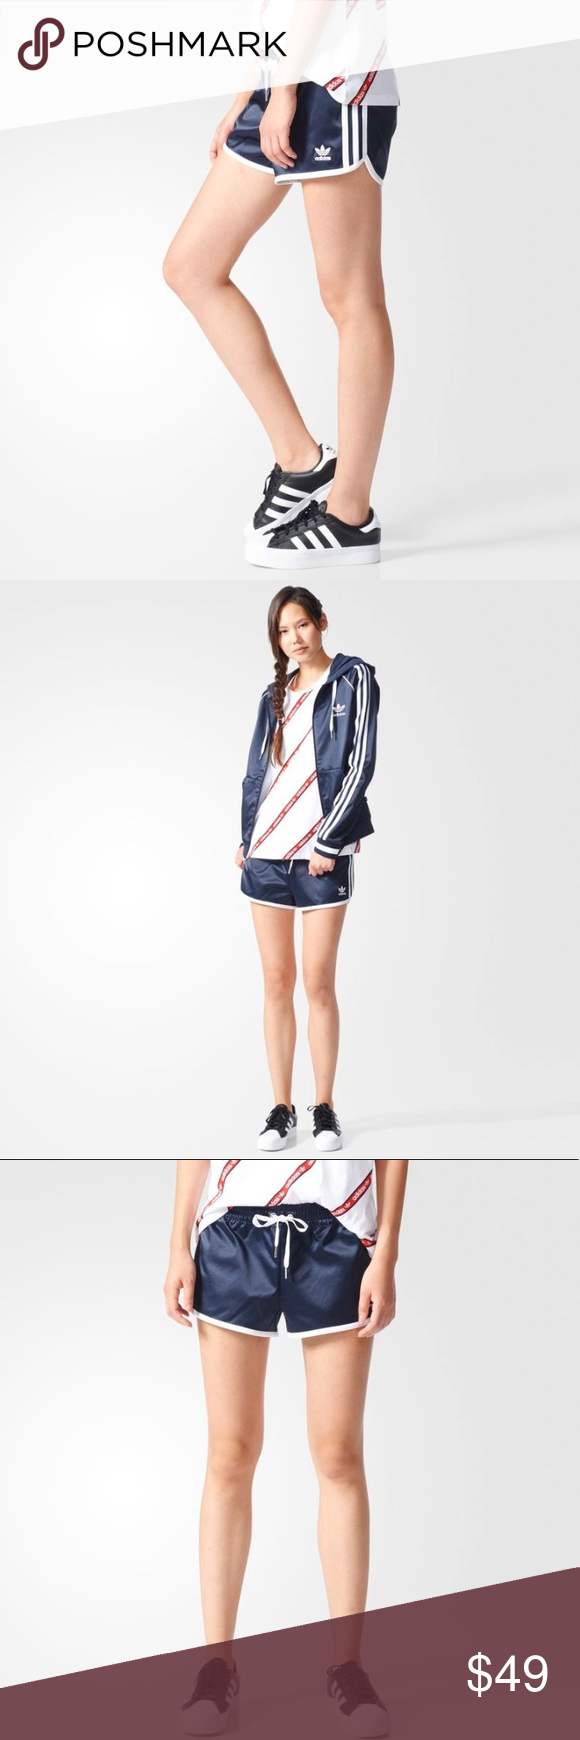 90f319f854 adidas Originals Women's Slim Shorts (BJ8372) New with Tags. Elastic waist  with drawcord Embroidered Trefoil logo on left leg 3-Stripes on sides Slim  fit ...